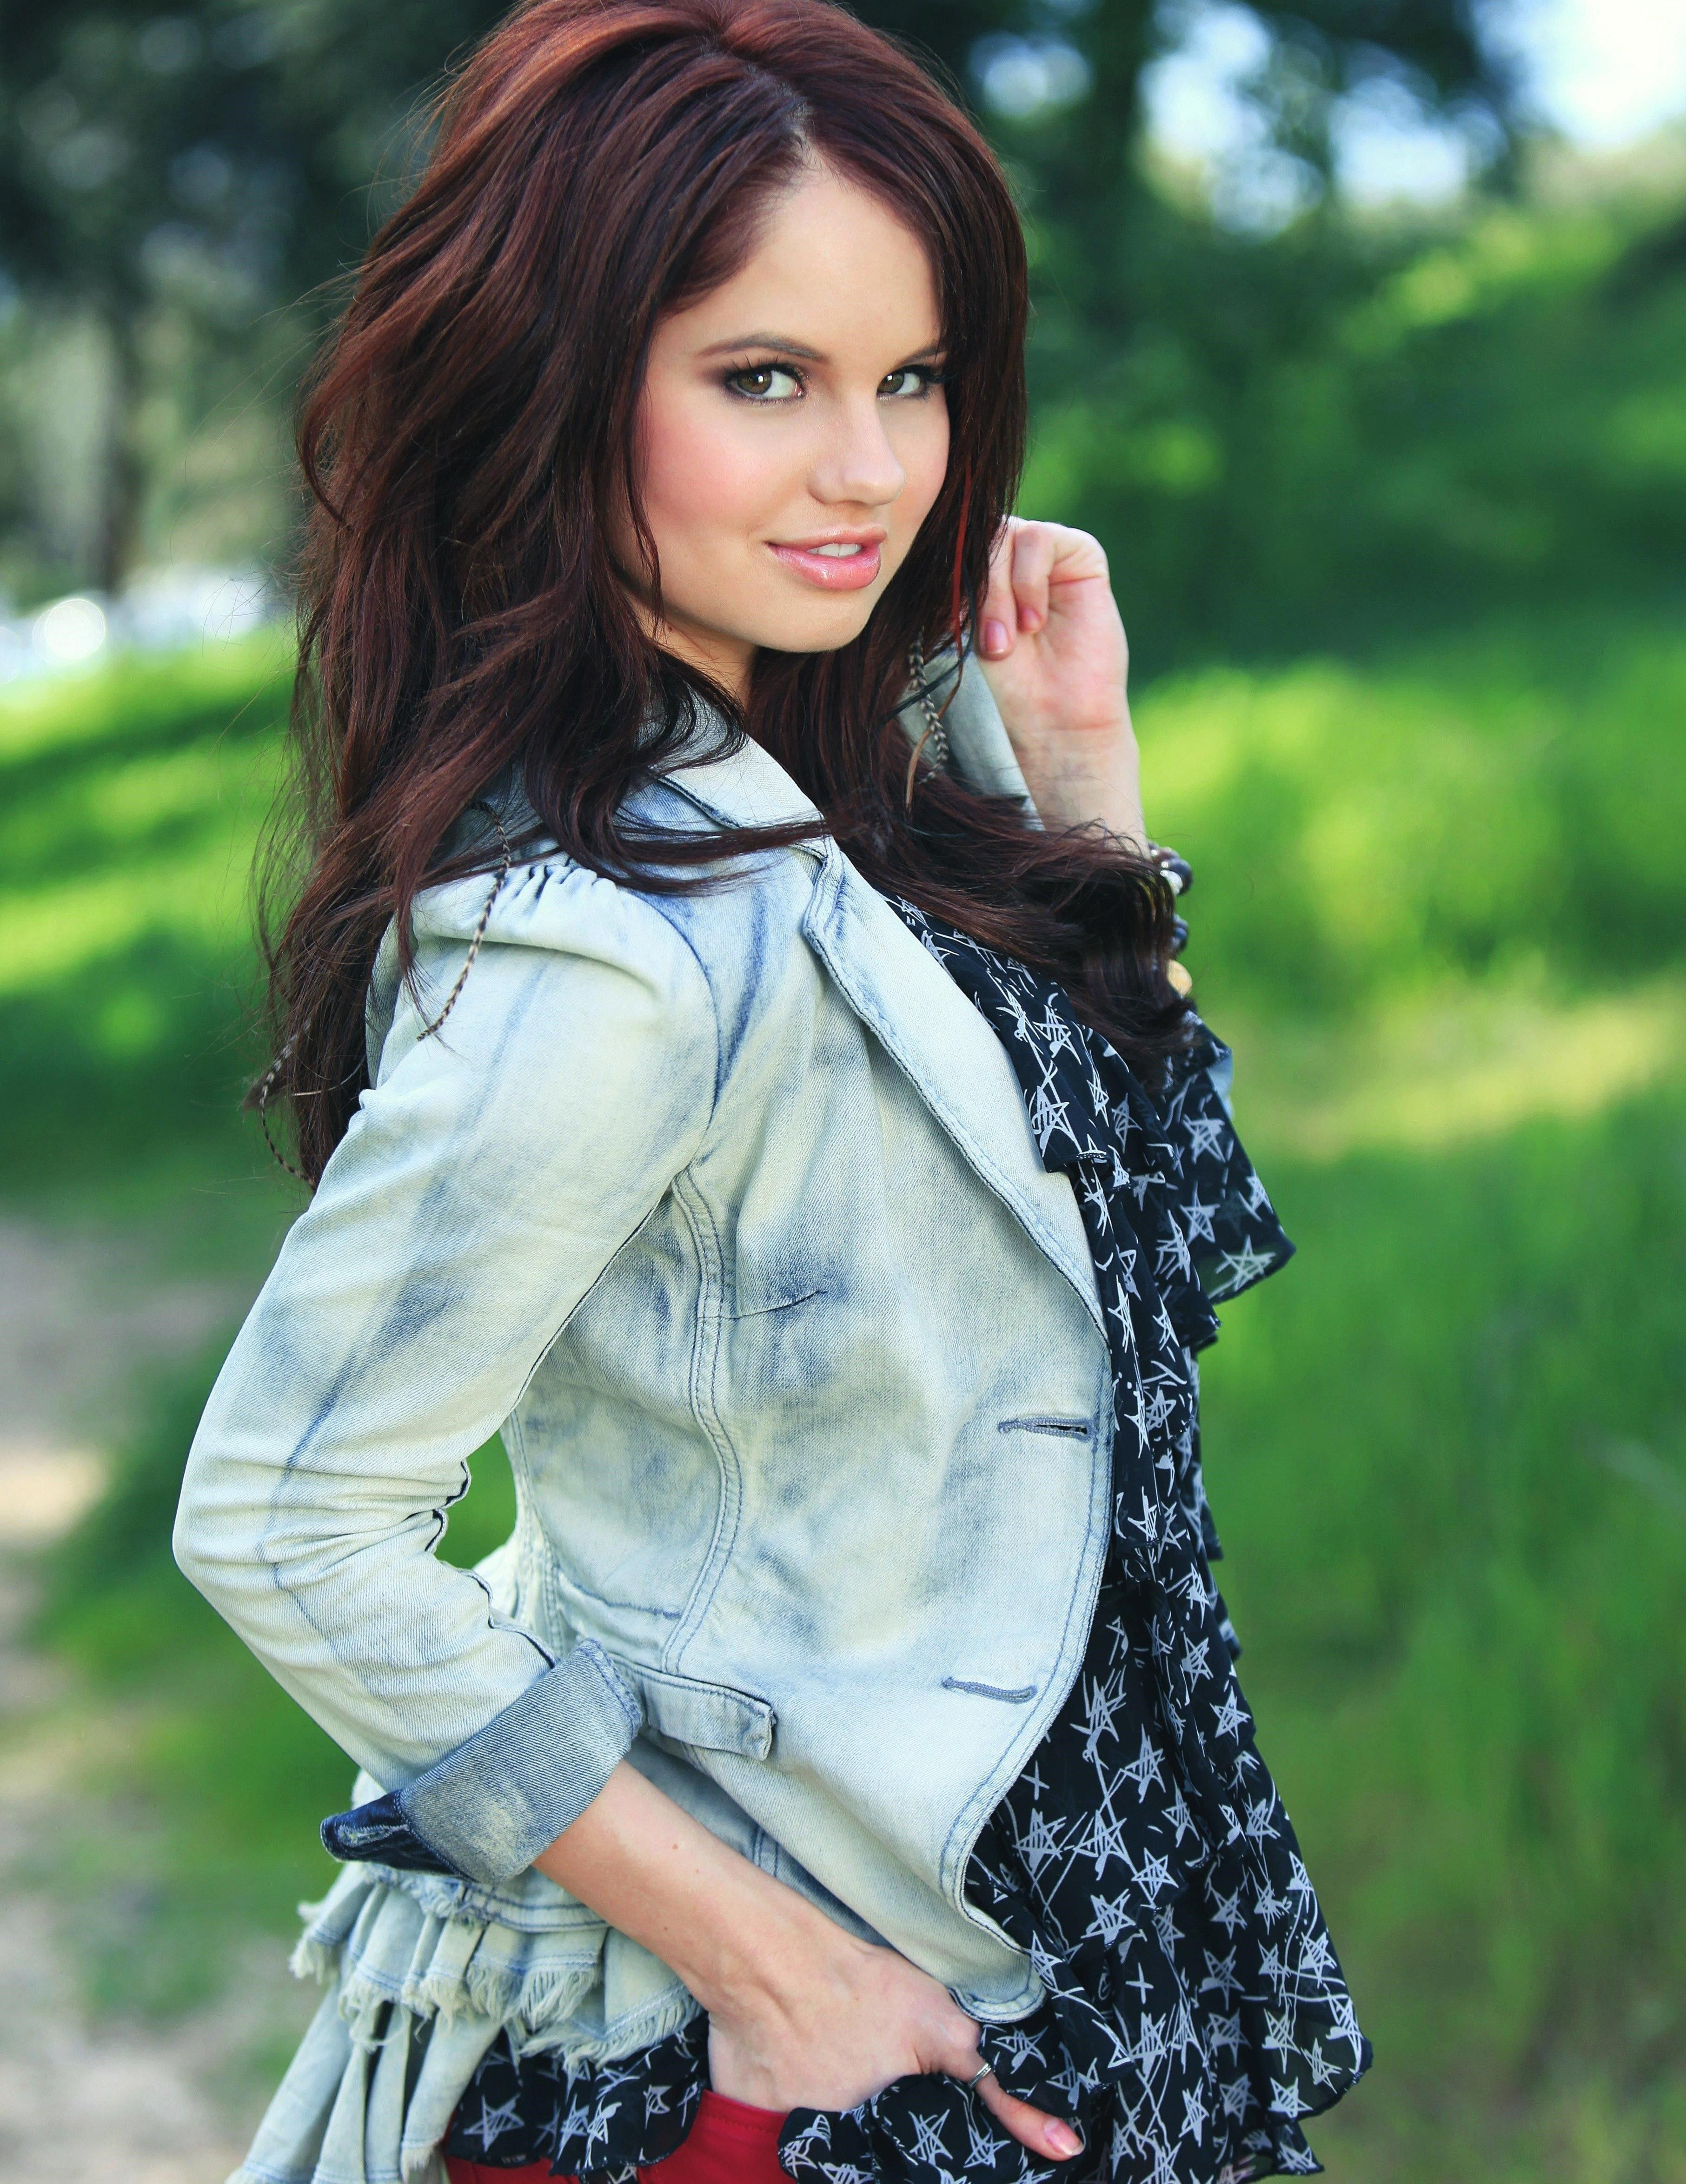 Best HD Photos Wallpapers Pics of Debby Ryan Best HD